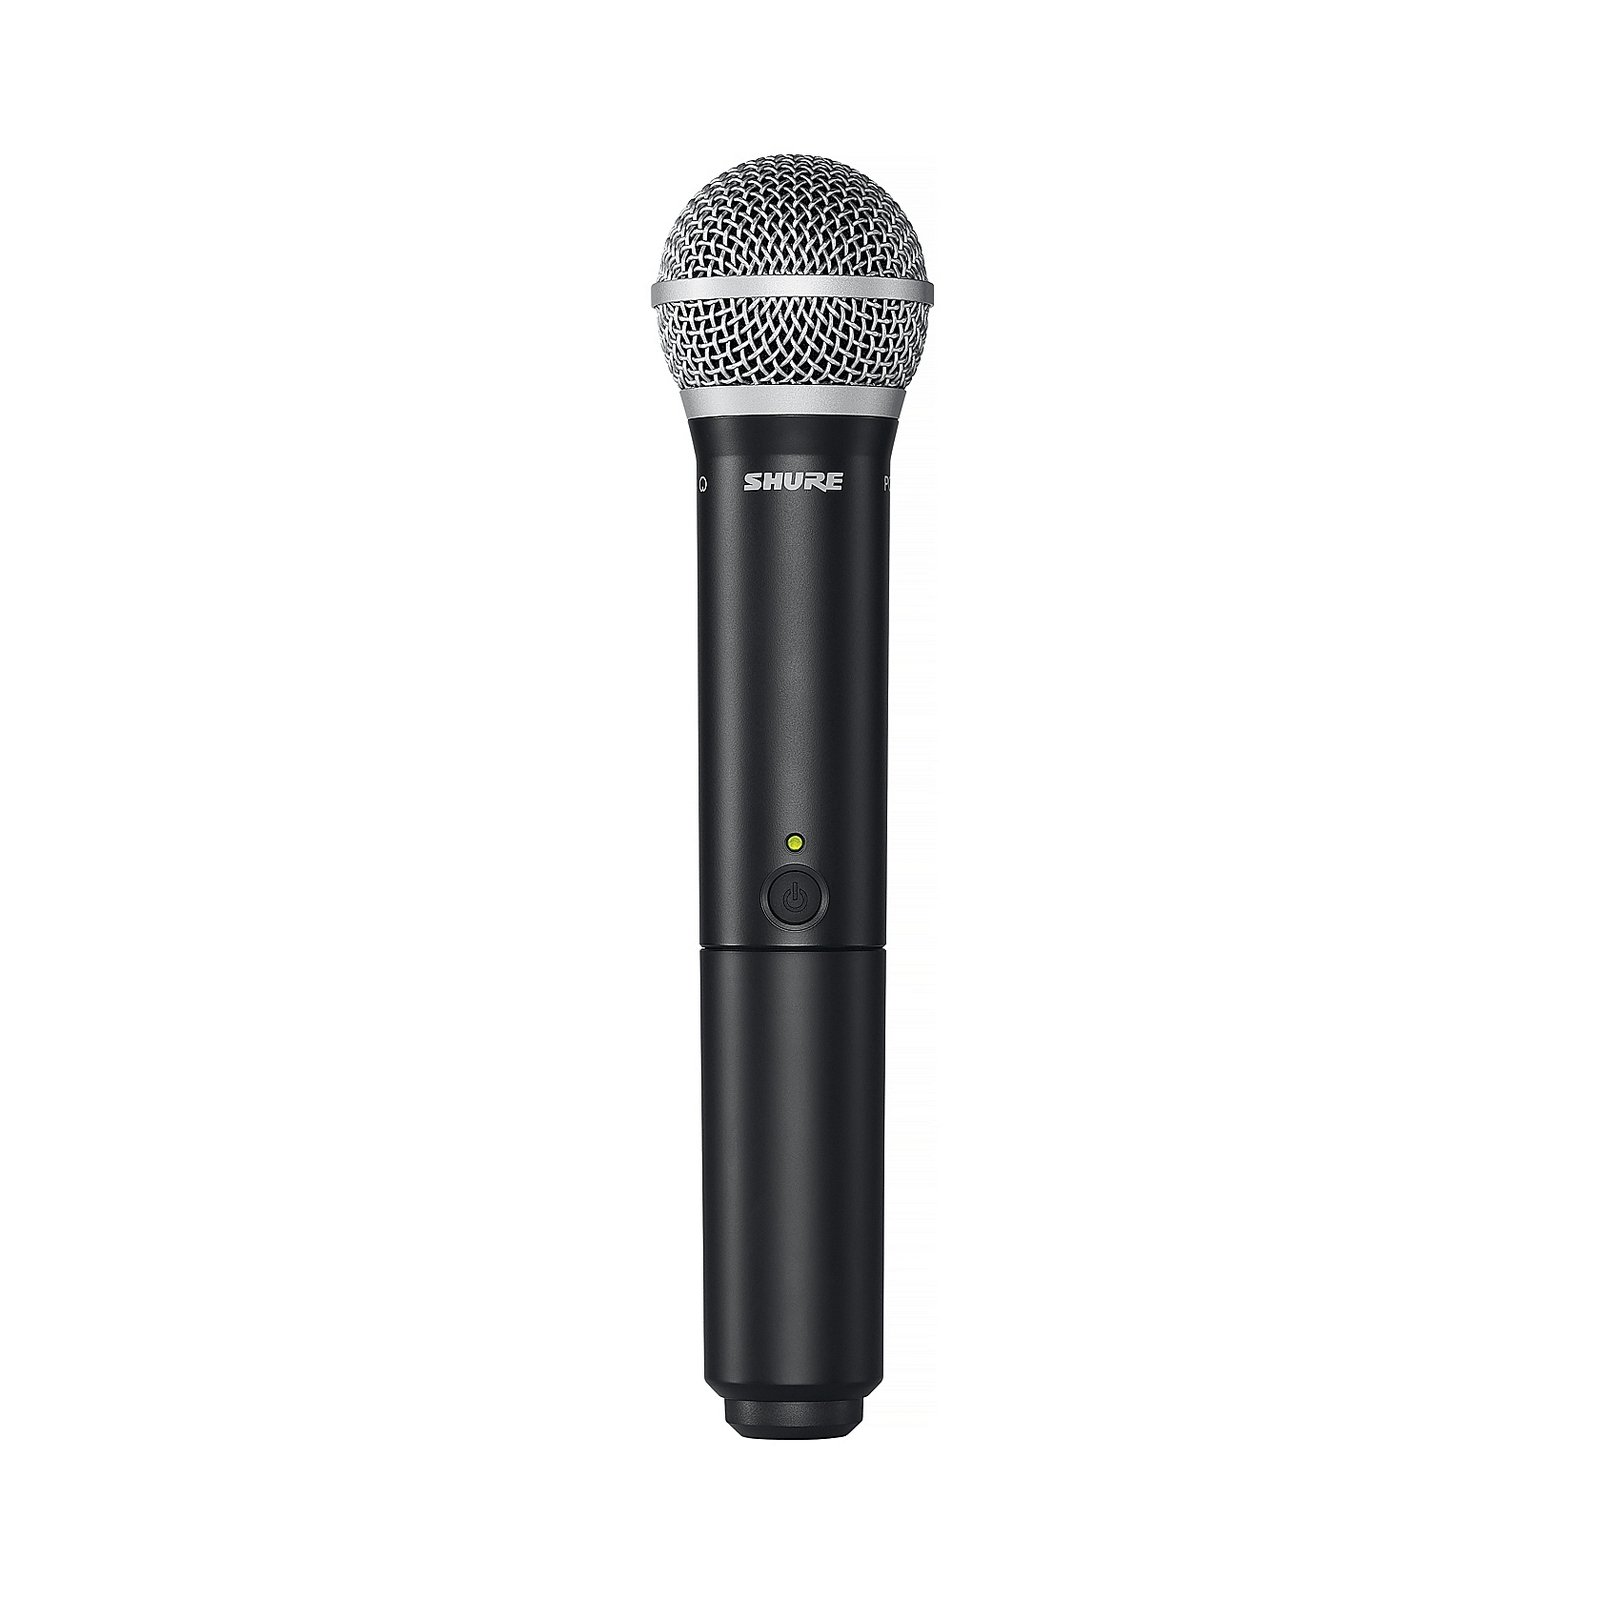 Shure BLX288/PG58 H9 | Two PG58 Handheld Microphones Dual Channel Handheld Wireless System by Shure (Image #3)